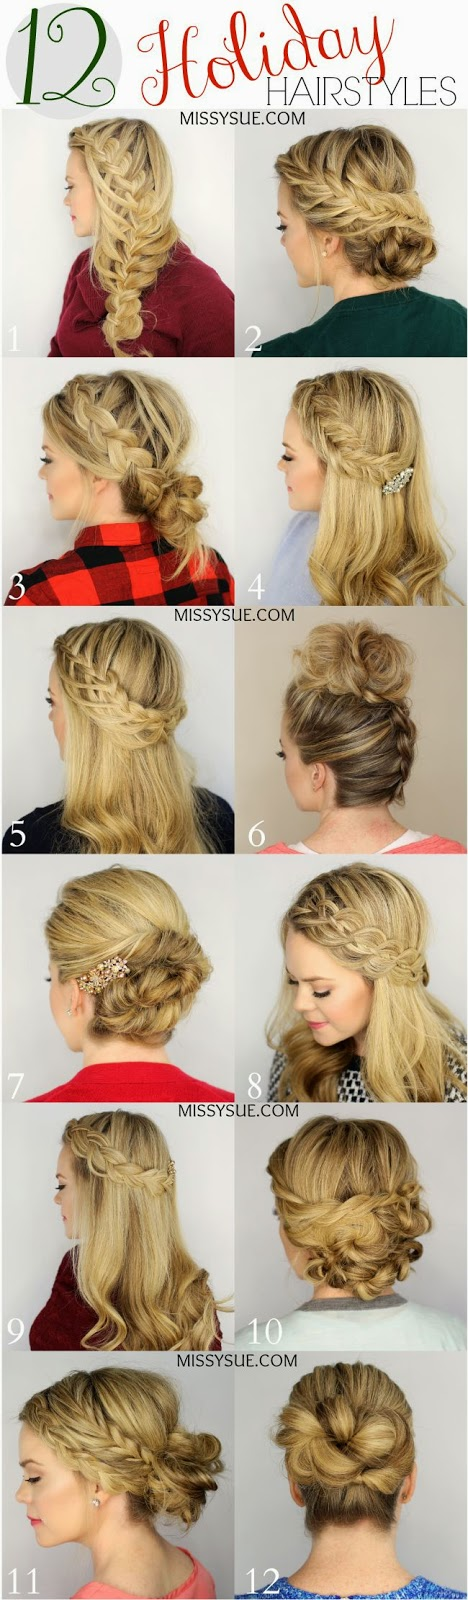 Hairstyles Holiday : Holiday Hairstyle - Fashion Style